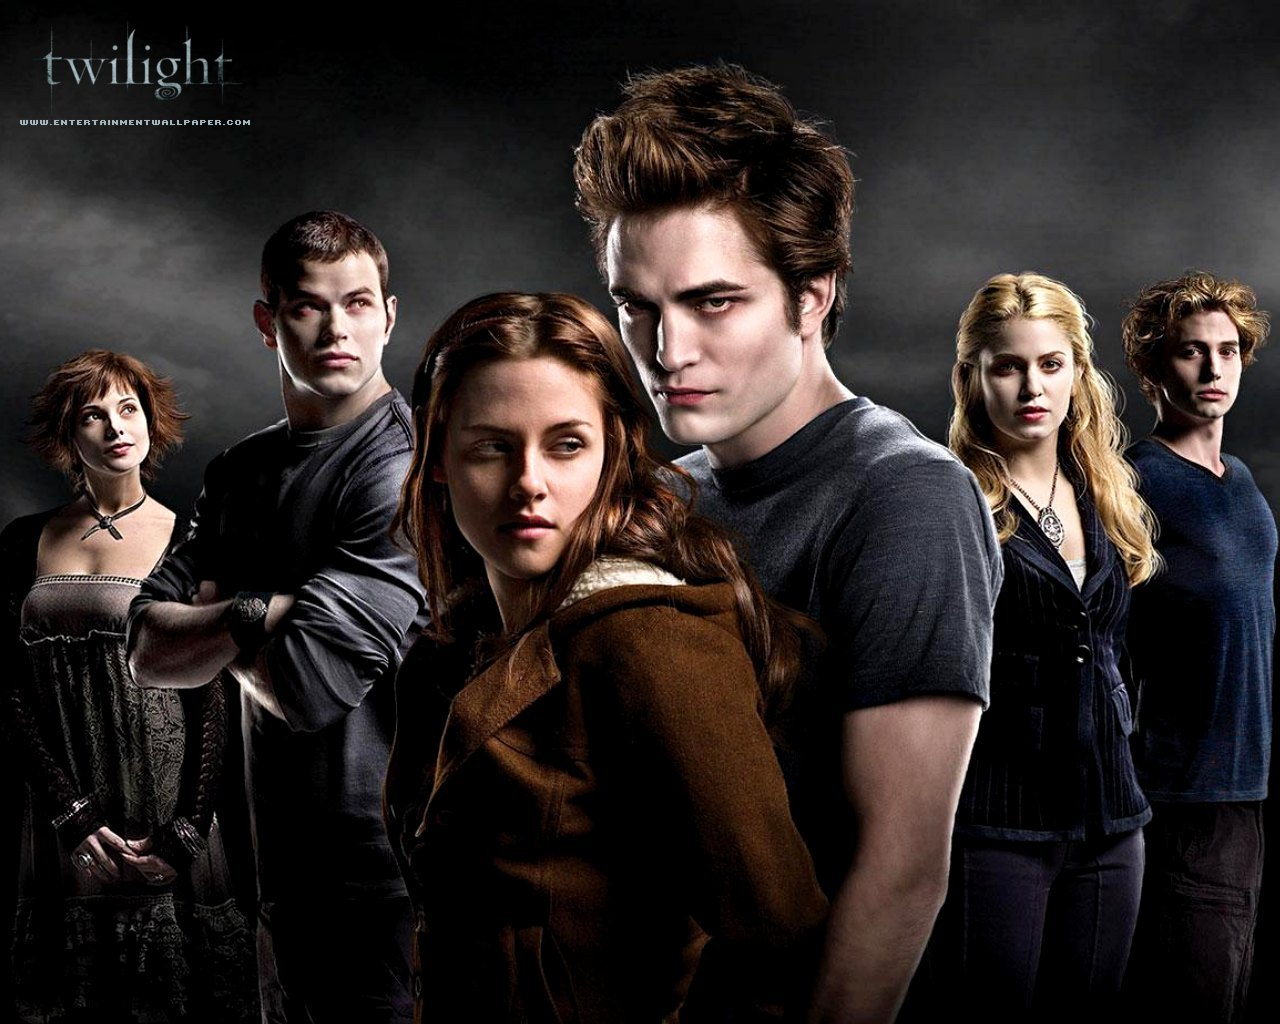 http://1.bp.blogspot.com/_oqEuOBXQxwU/THQtcH8CQcI/AAAAAAAAATo/XUj0wPdKivs/s1600/Twilight+-+Movie+Wallpaper+-+02.jpg